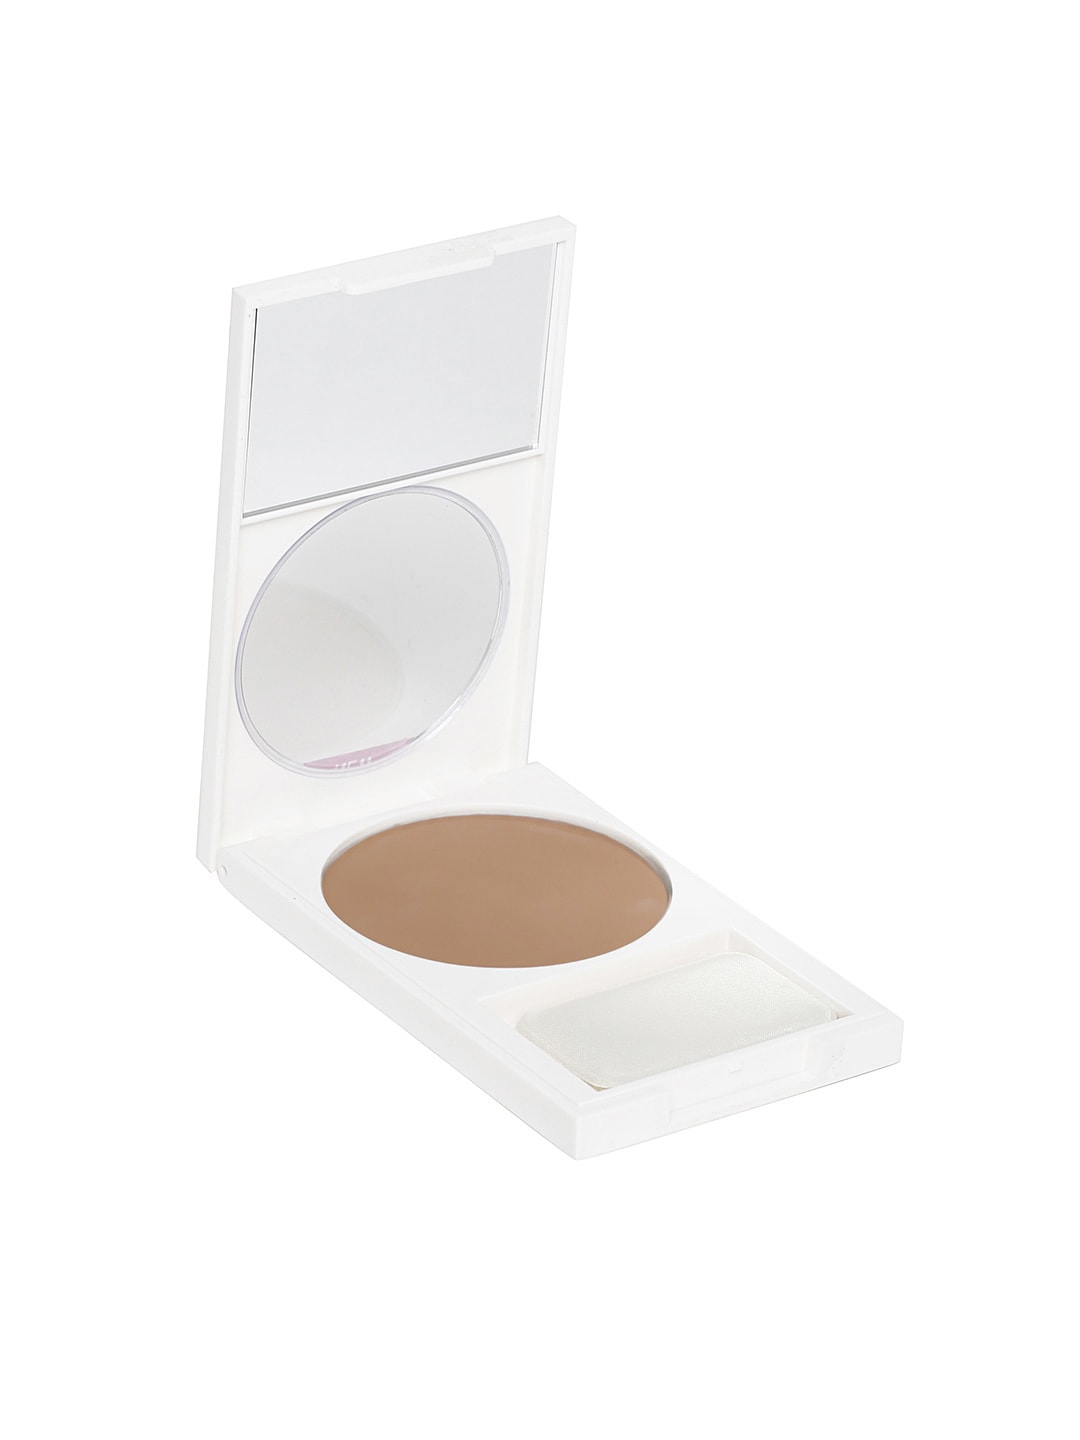 Revlon Nearly Naked Medium Pressed Powder 030